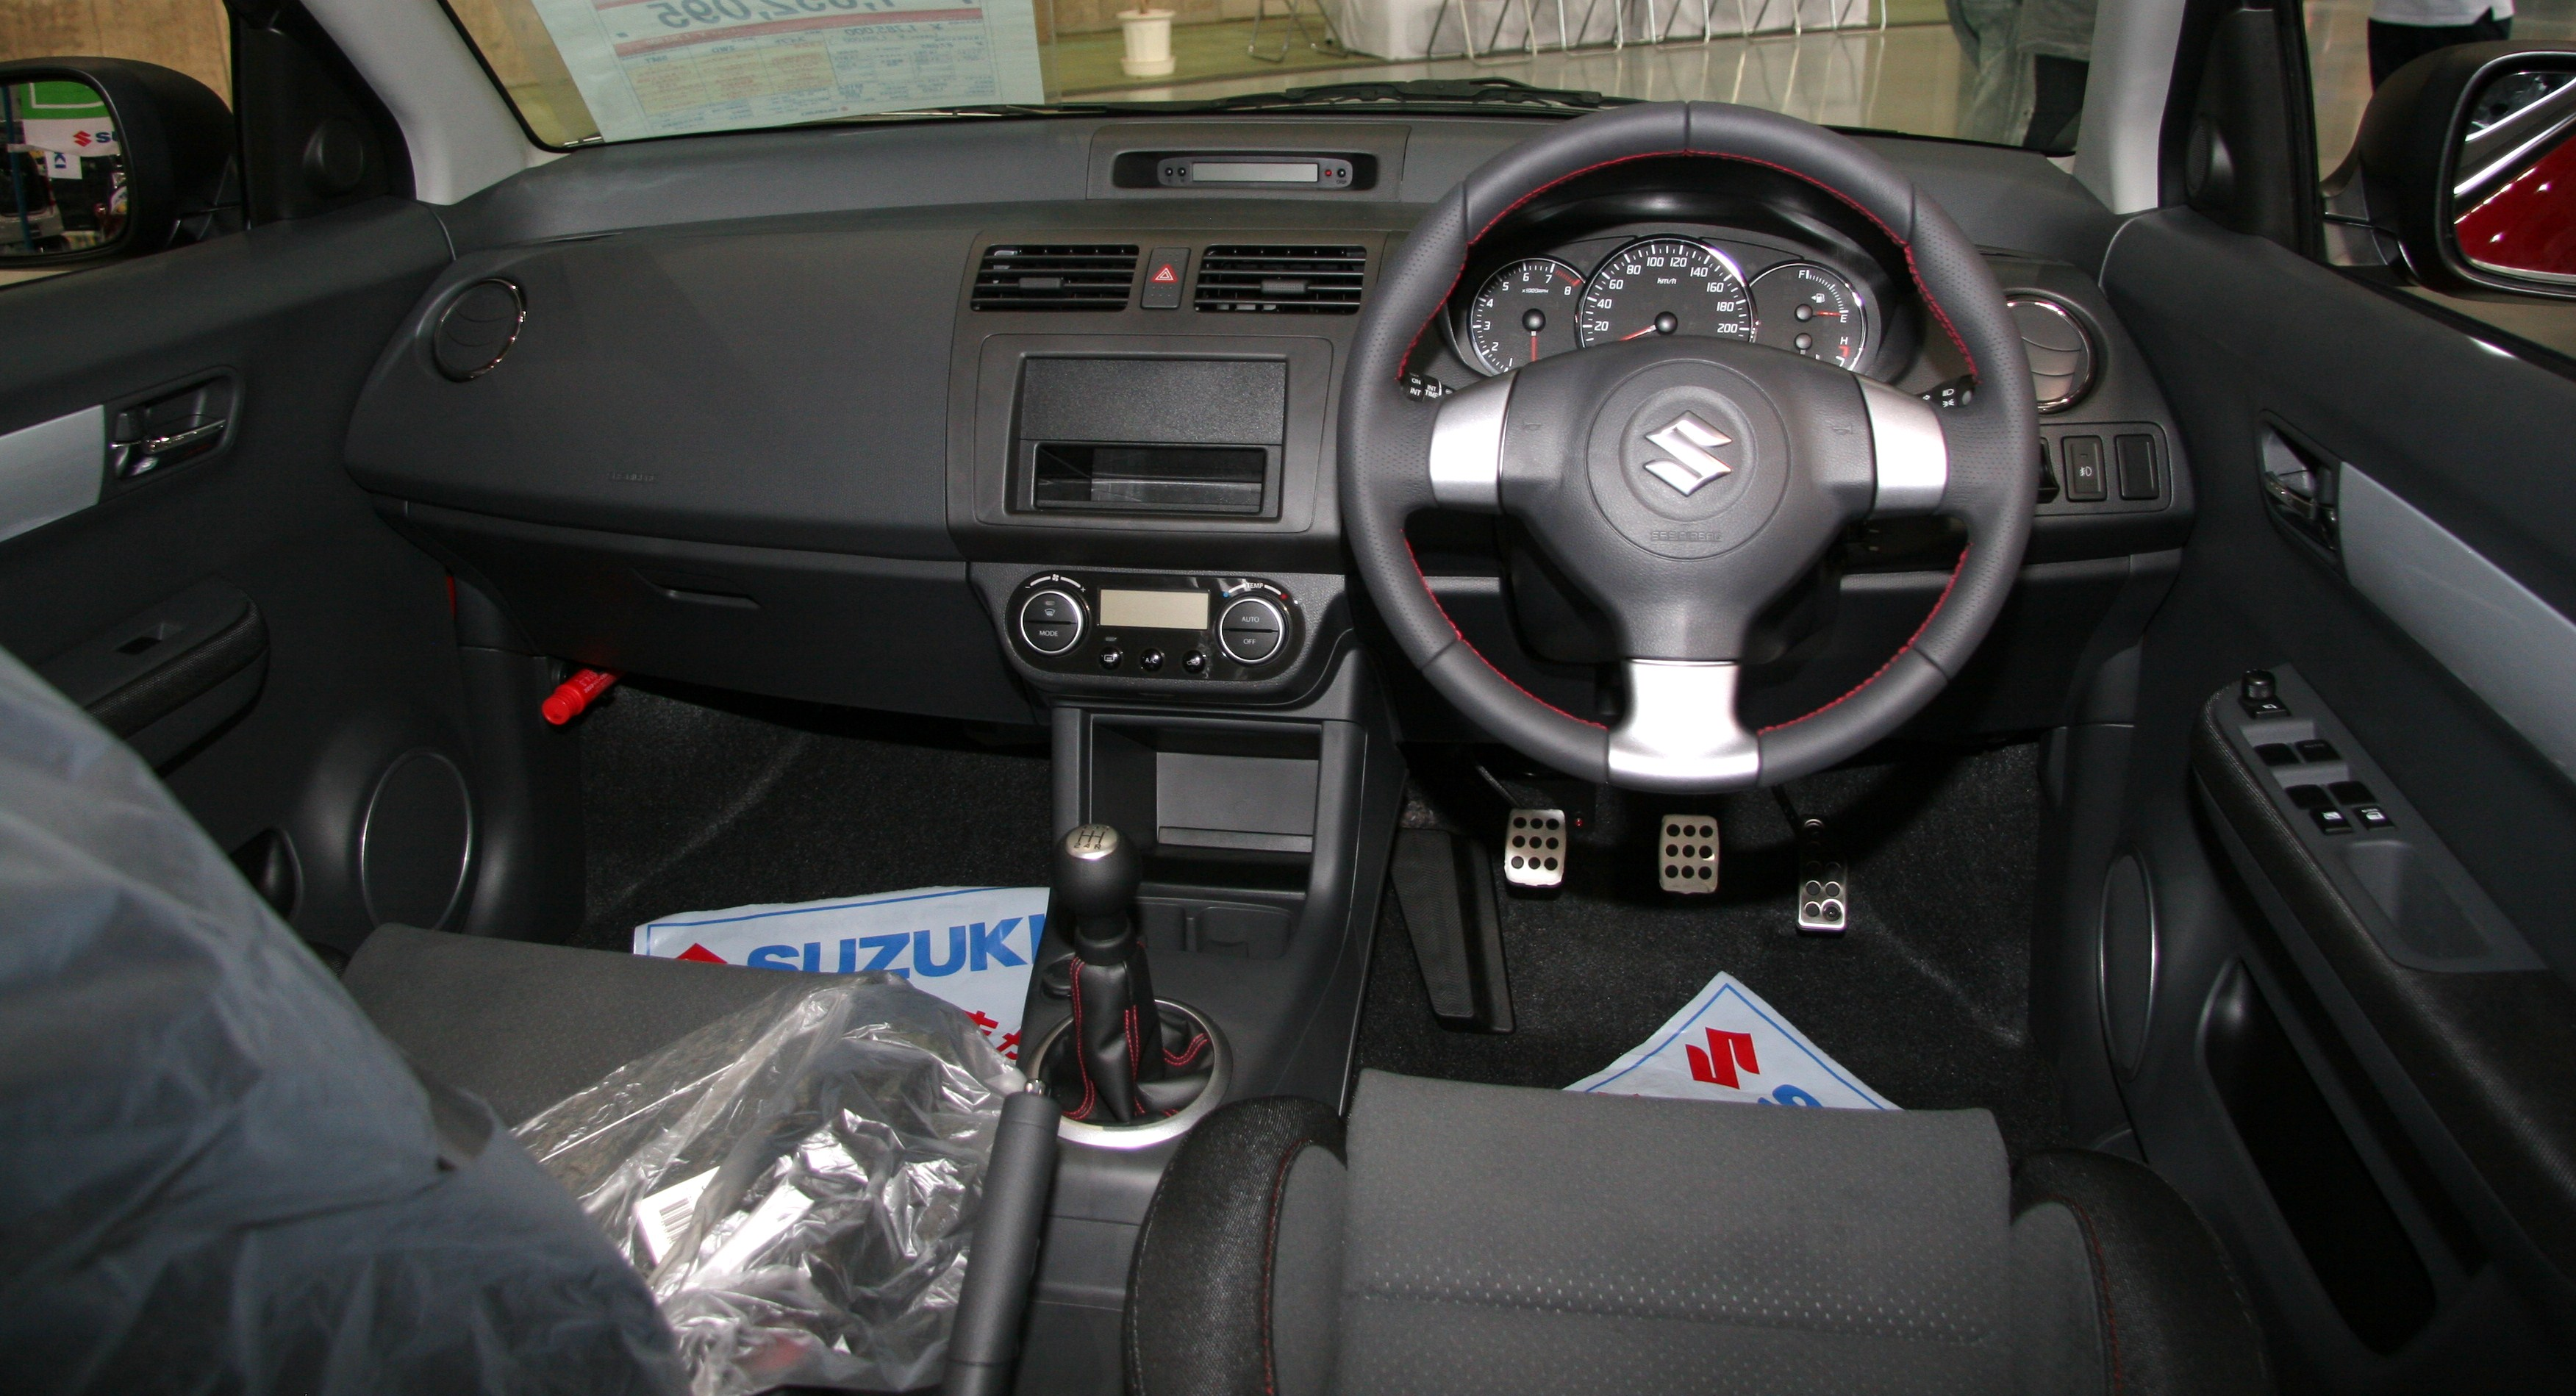 https://upload.wikimedia.org/wikipedia/commons/8/8c/Suzuki_Swift_Sport_interior.jpg